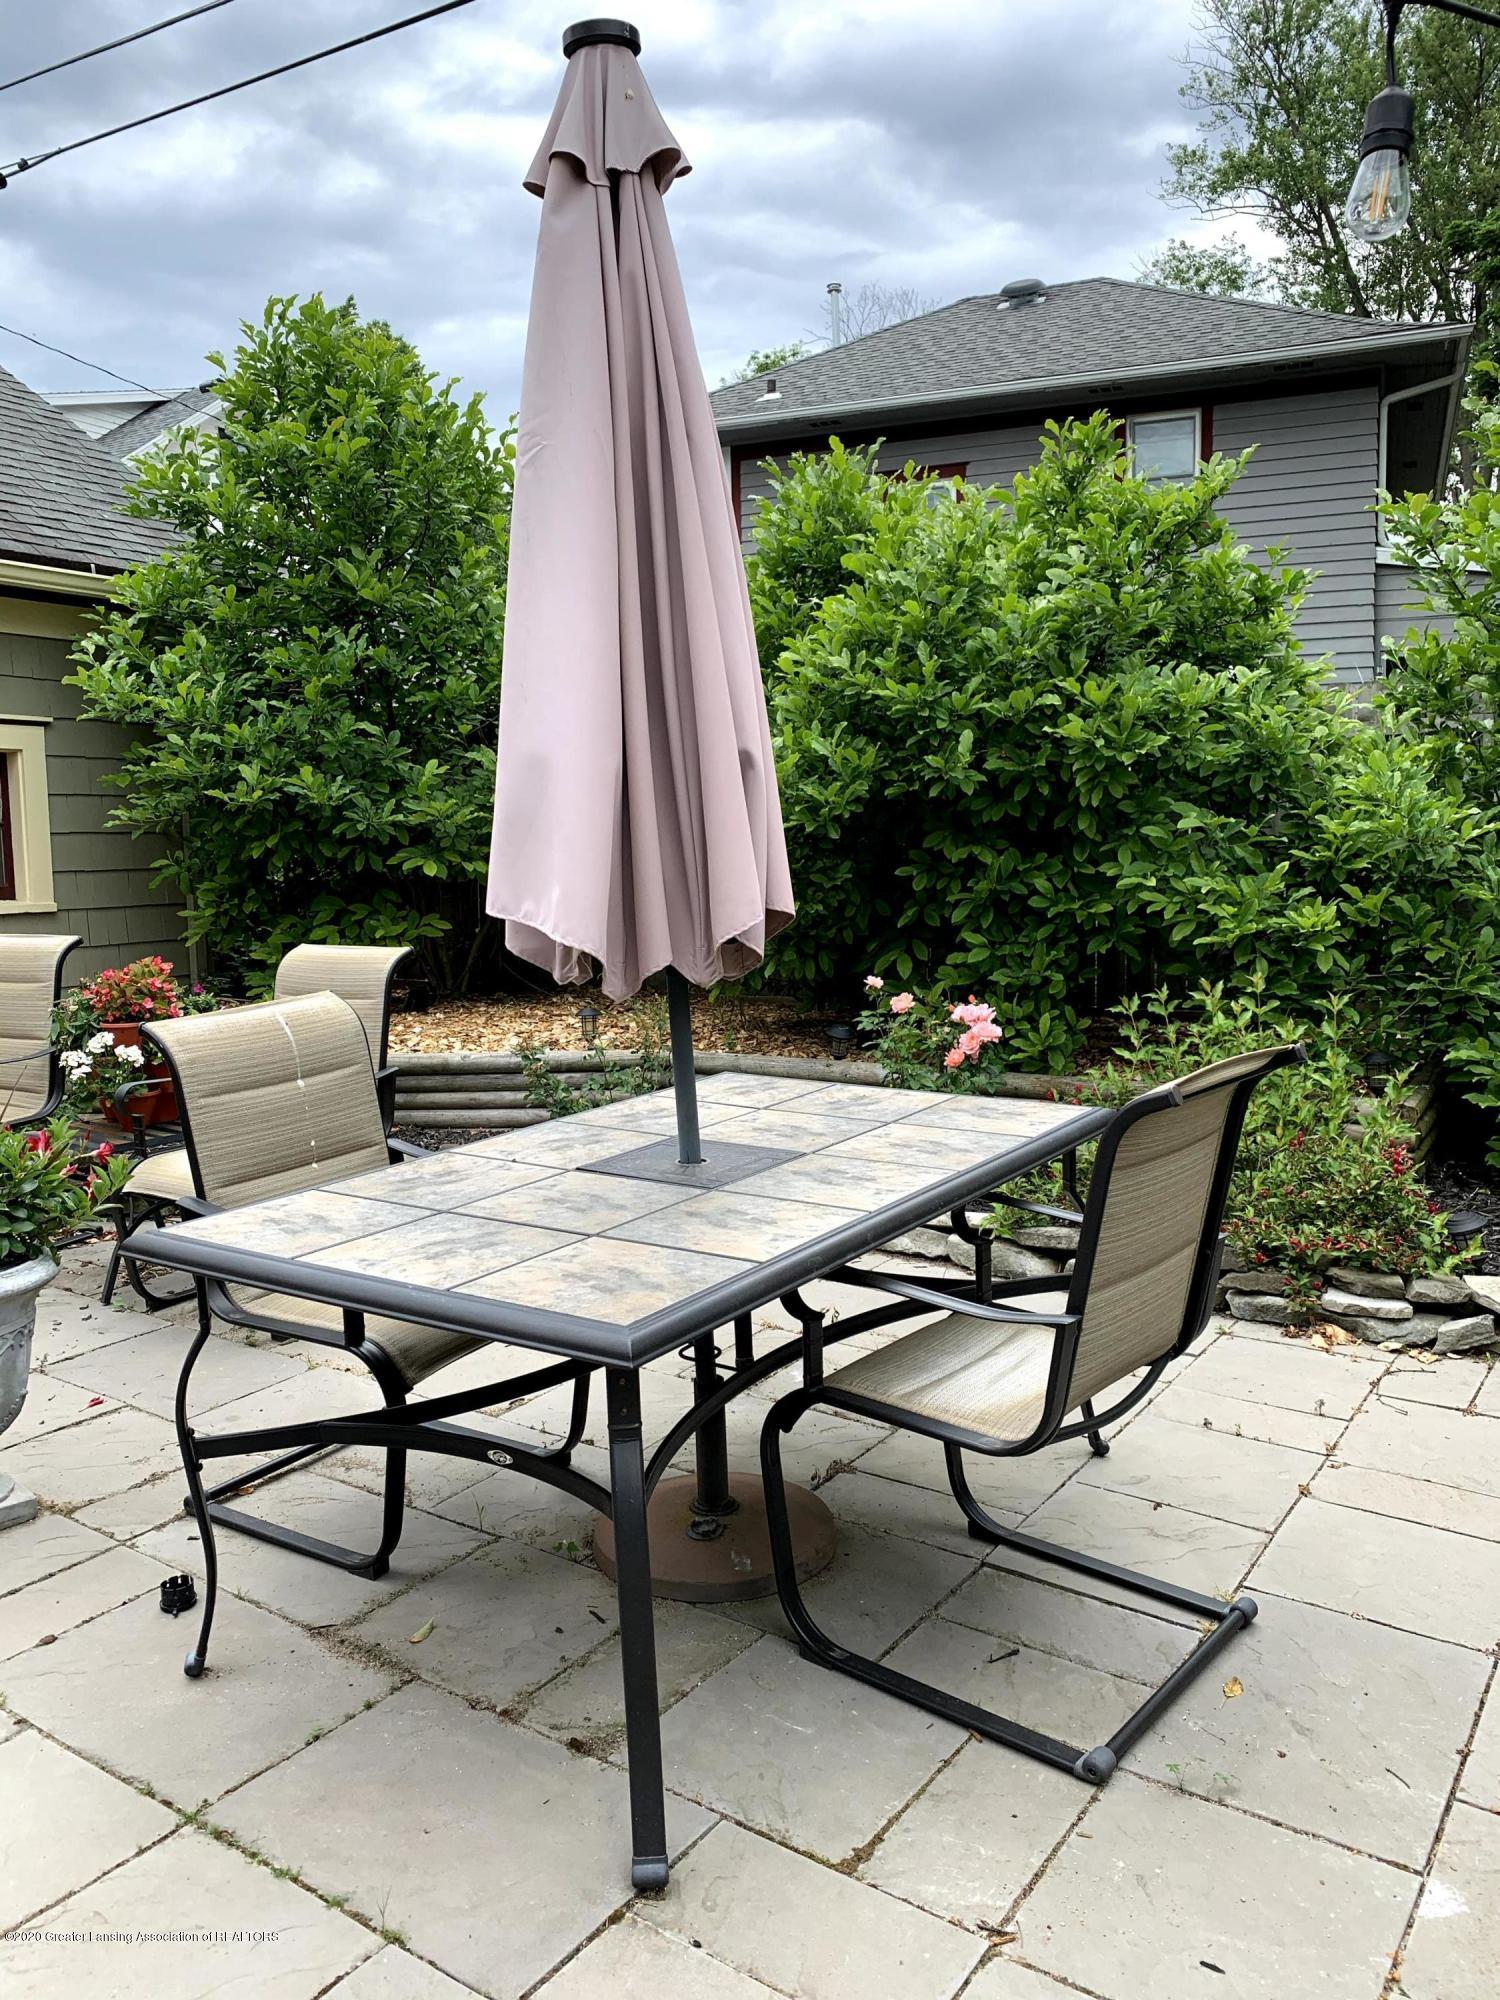 523 N Jenison Ave - Patio - 33